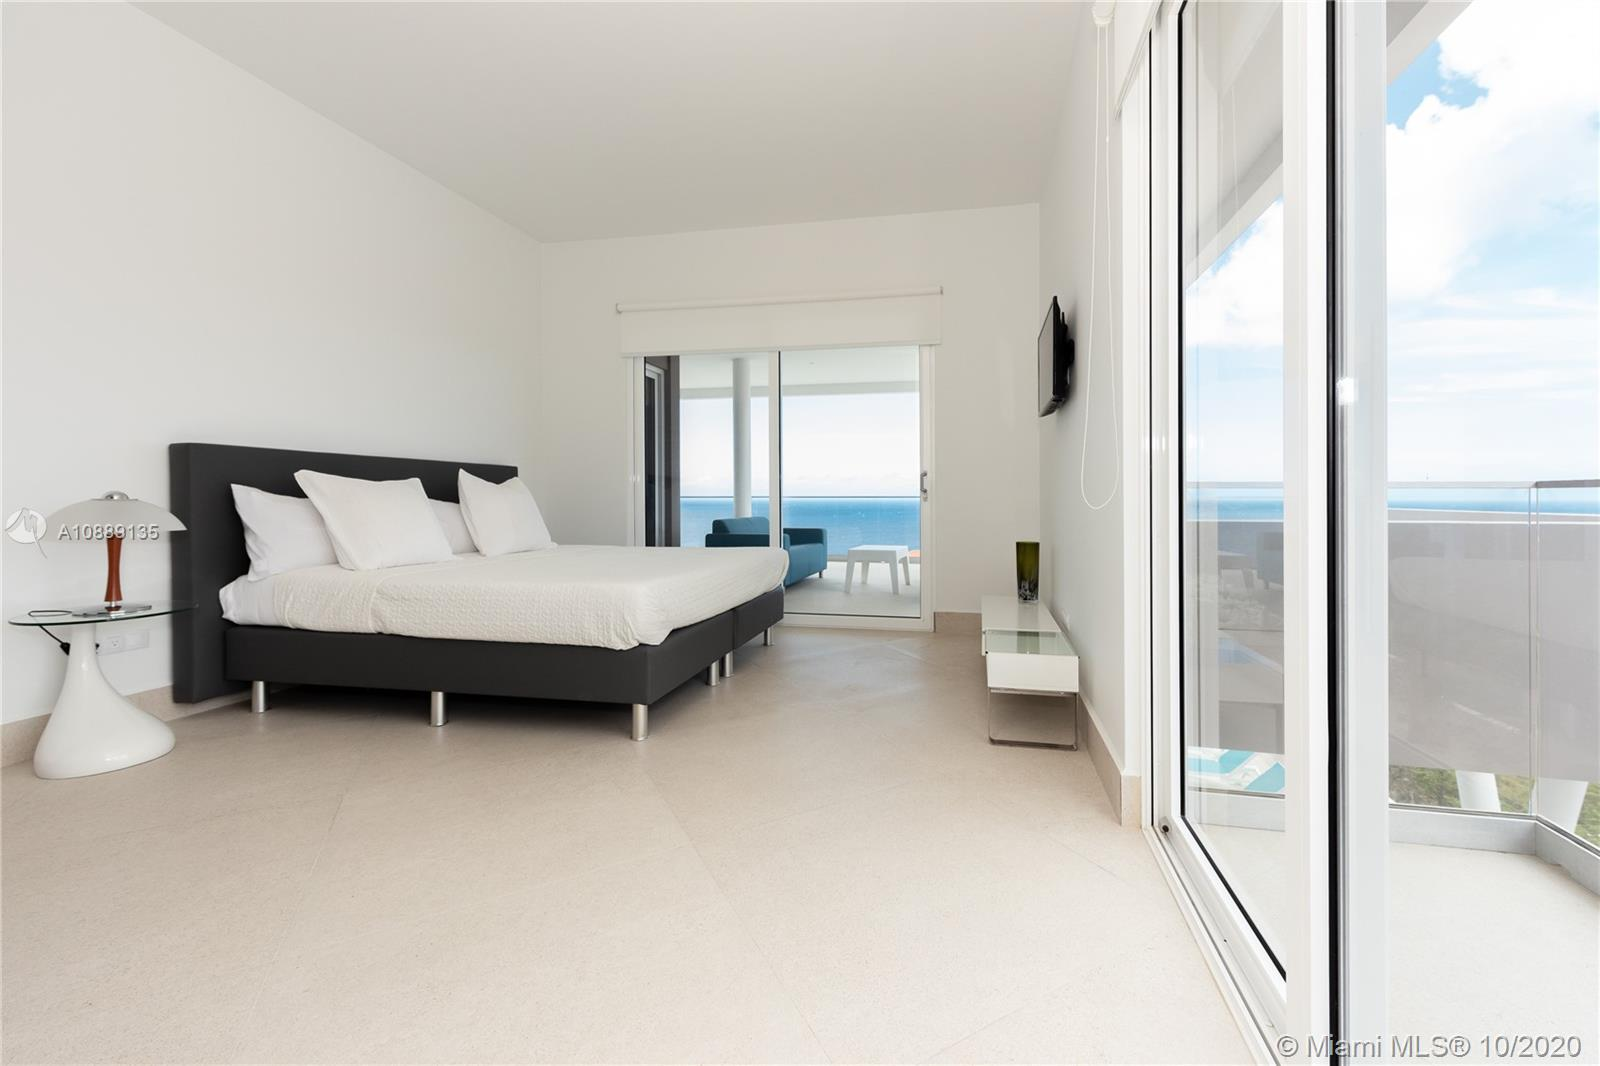 Large private master bedroom with King bed, extra large ensuite bathroom, oval bathtub, glass rain shower overlooking the ocean, with its own private terrace and custom built walking closet.2 additional bedrooms with queen beds, floor to ceiling custom closets and private ensuite with double sinks with rain shower, both bedrooms have private terraces overlooking the ocean and a guest bathroom.Energy saving LED lighting.